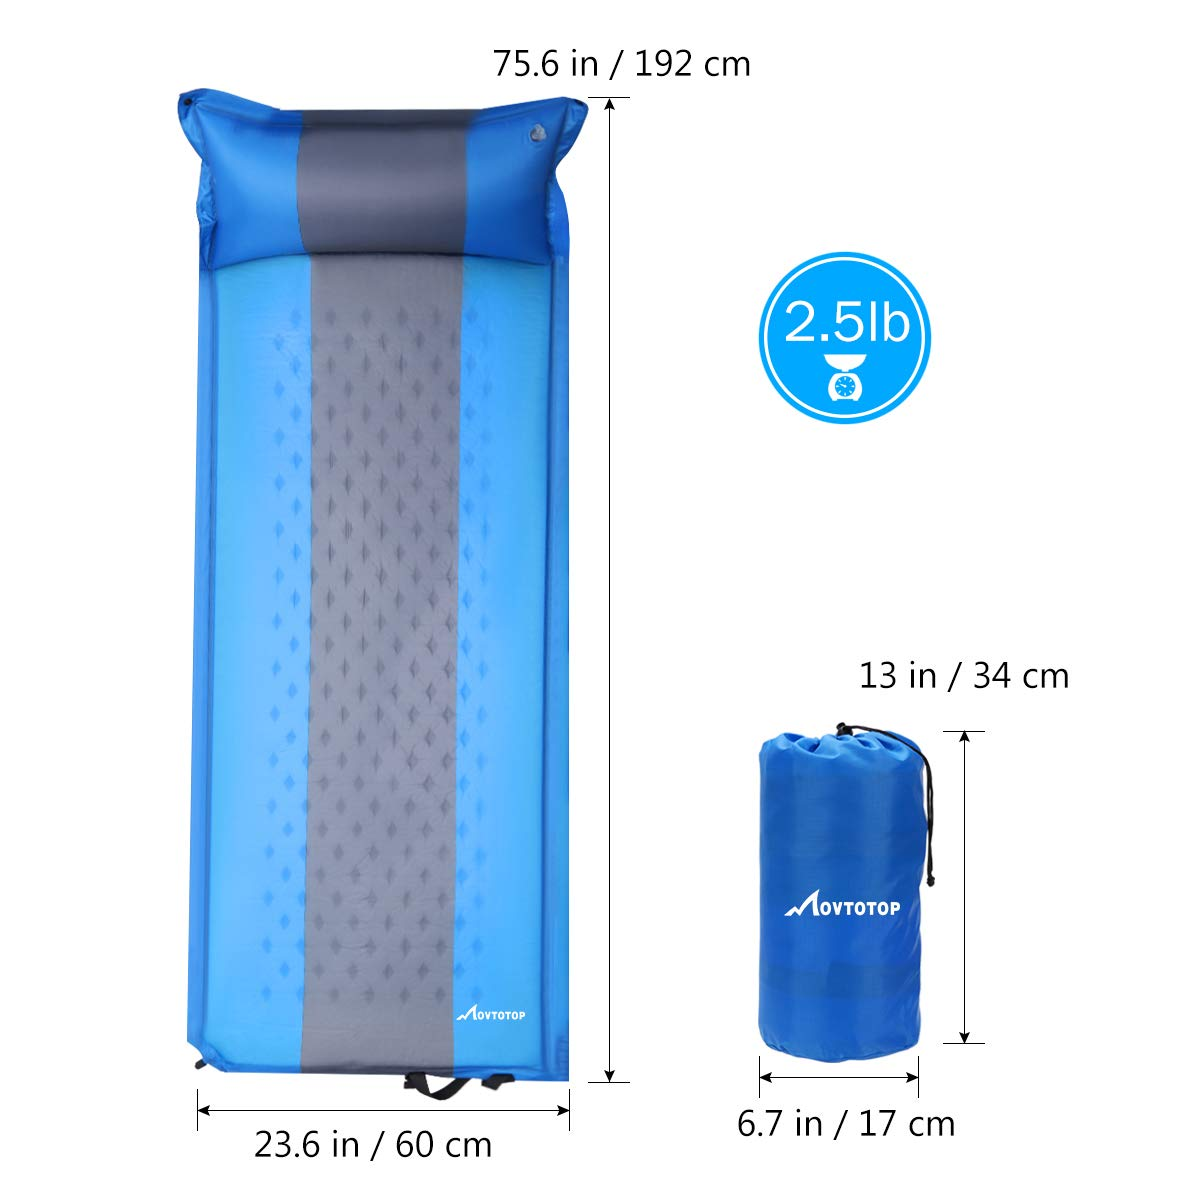 Blue Air Pump Included Comfortable Foam Camping Mat with Pillow Light Weight Camping Air Mattress for Hiking Backpacking Indoor Party MOVTOTOP Self Inflating Sleeping Pad